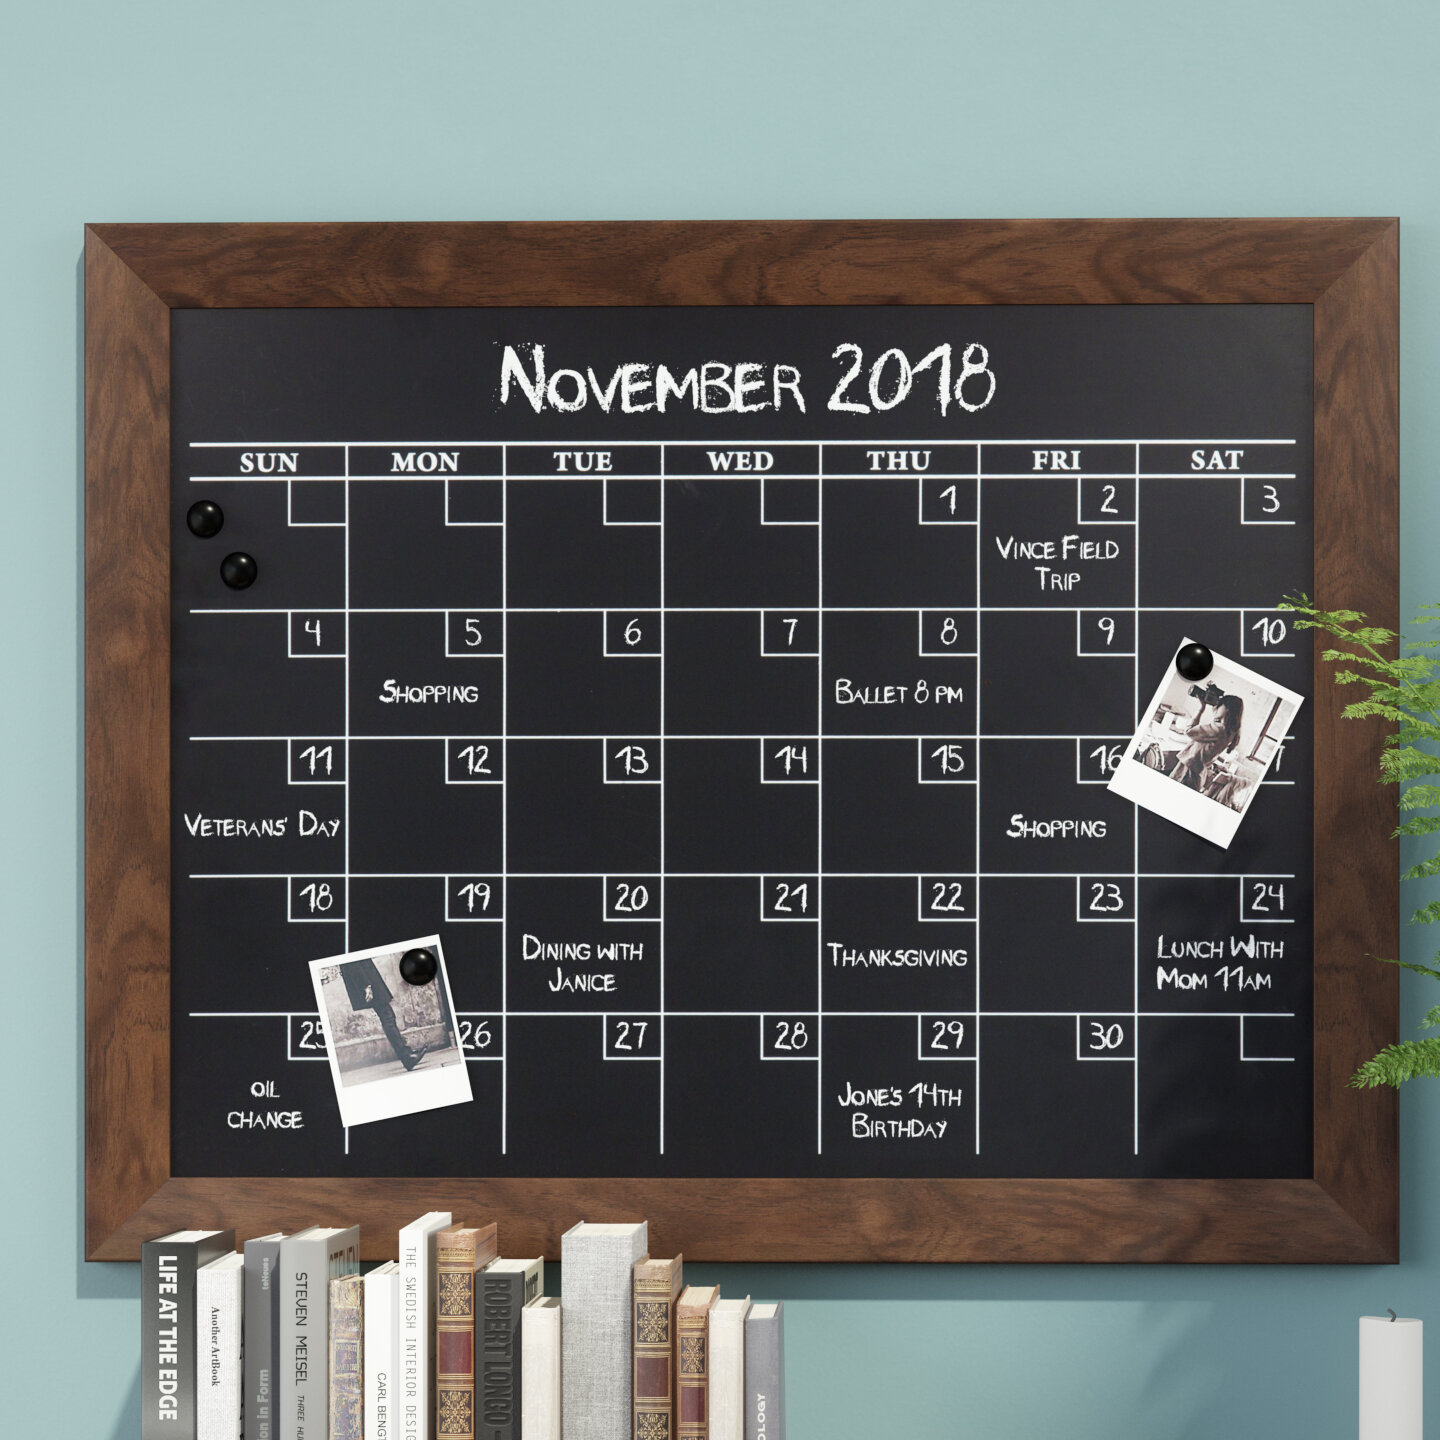 Union Rustic Framed Monthly Calendar Magnetic Wall Mounted Chalkboard Reviews Wayfair